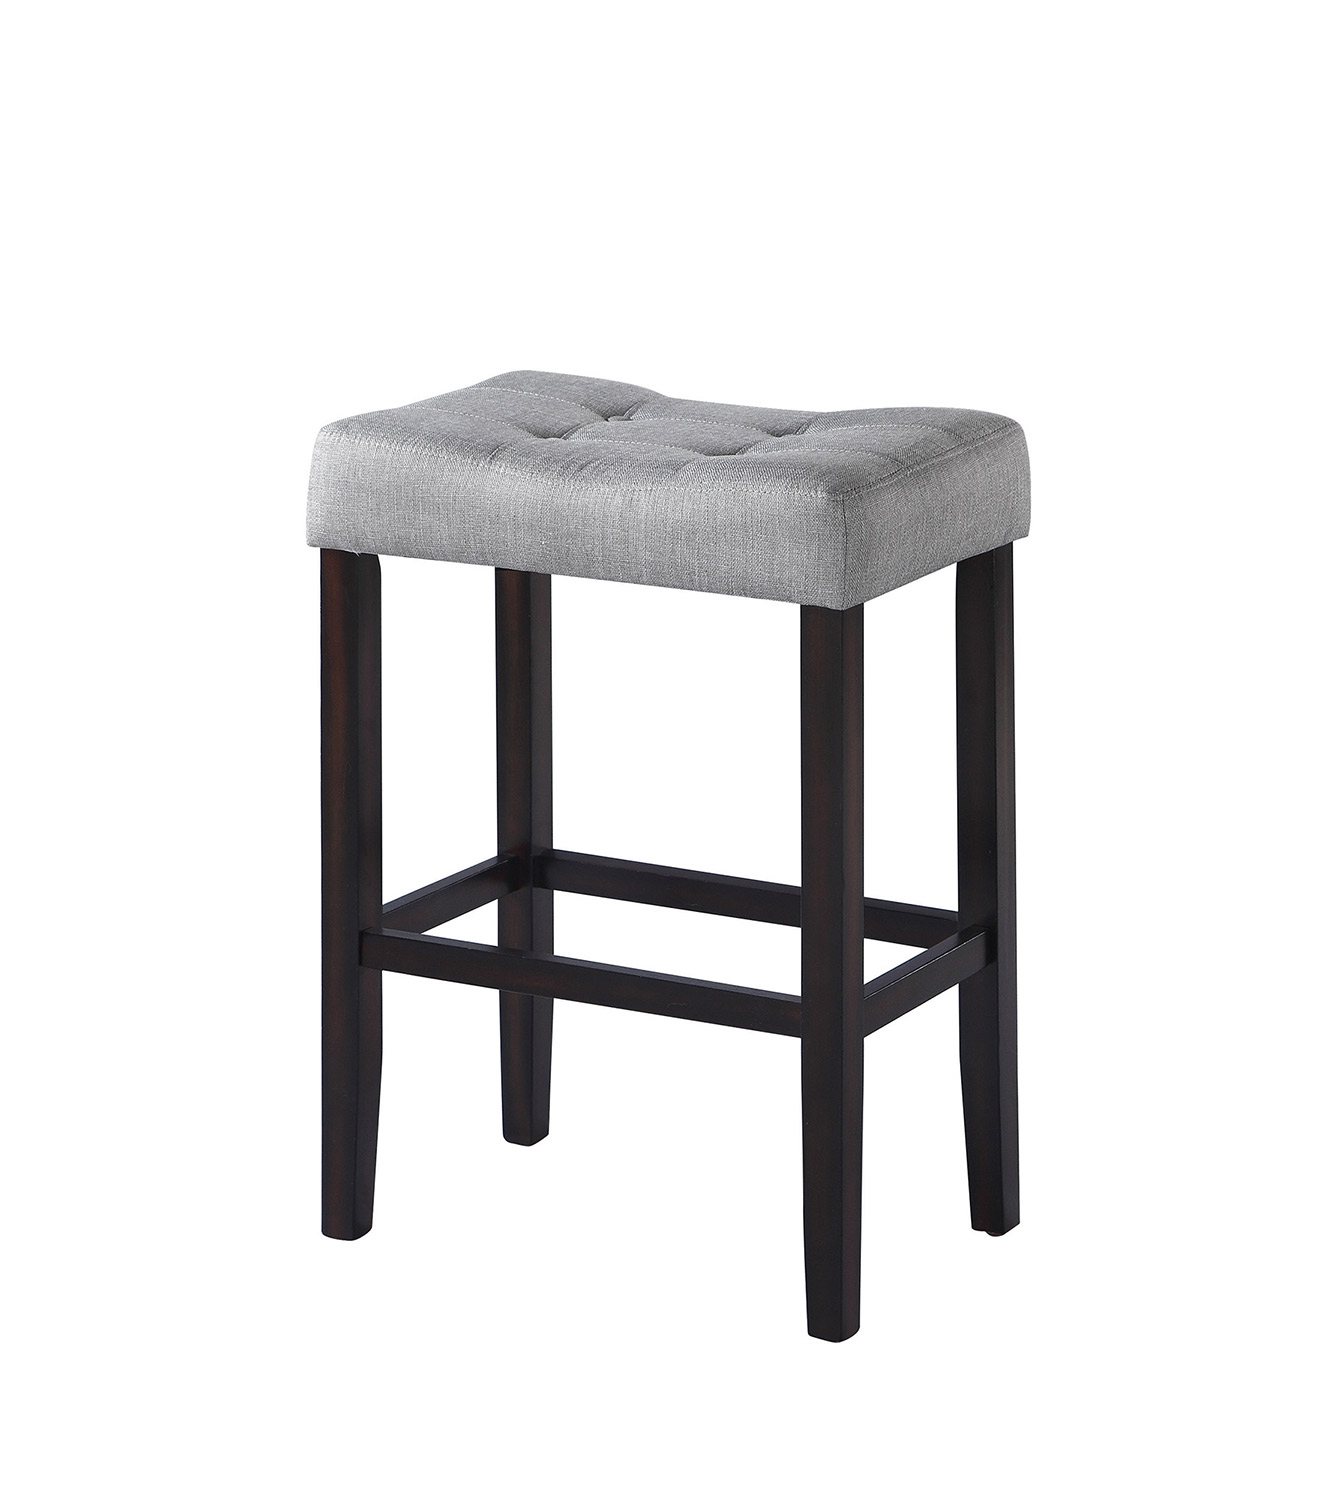 Coaster 182013 Bar Stool - Grey Fabric